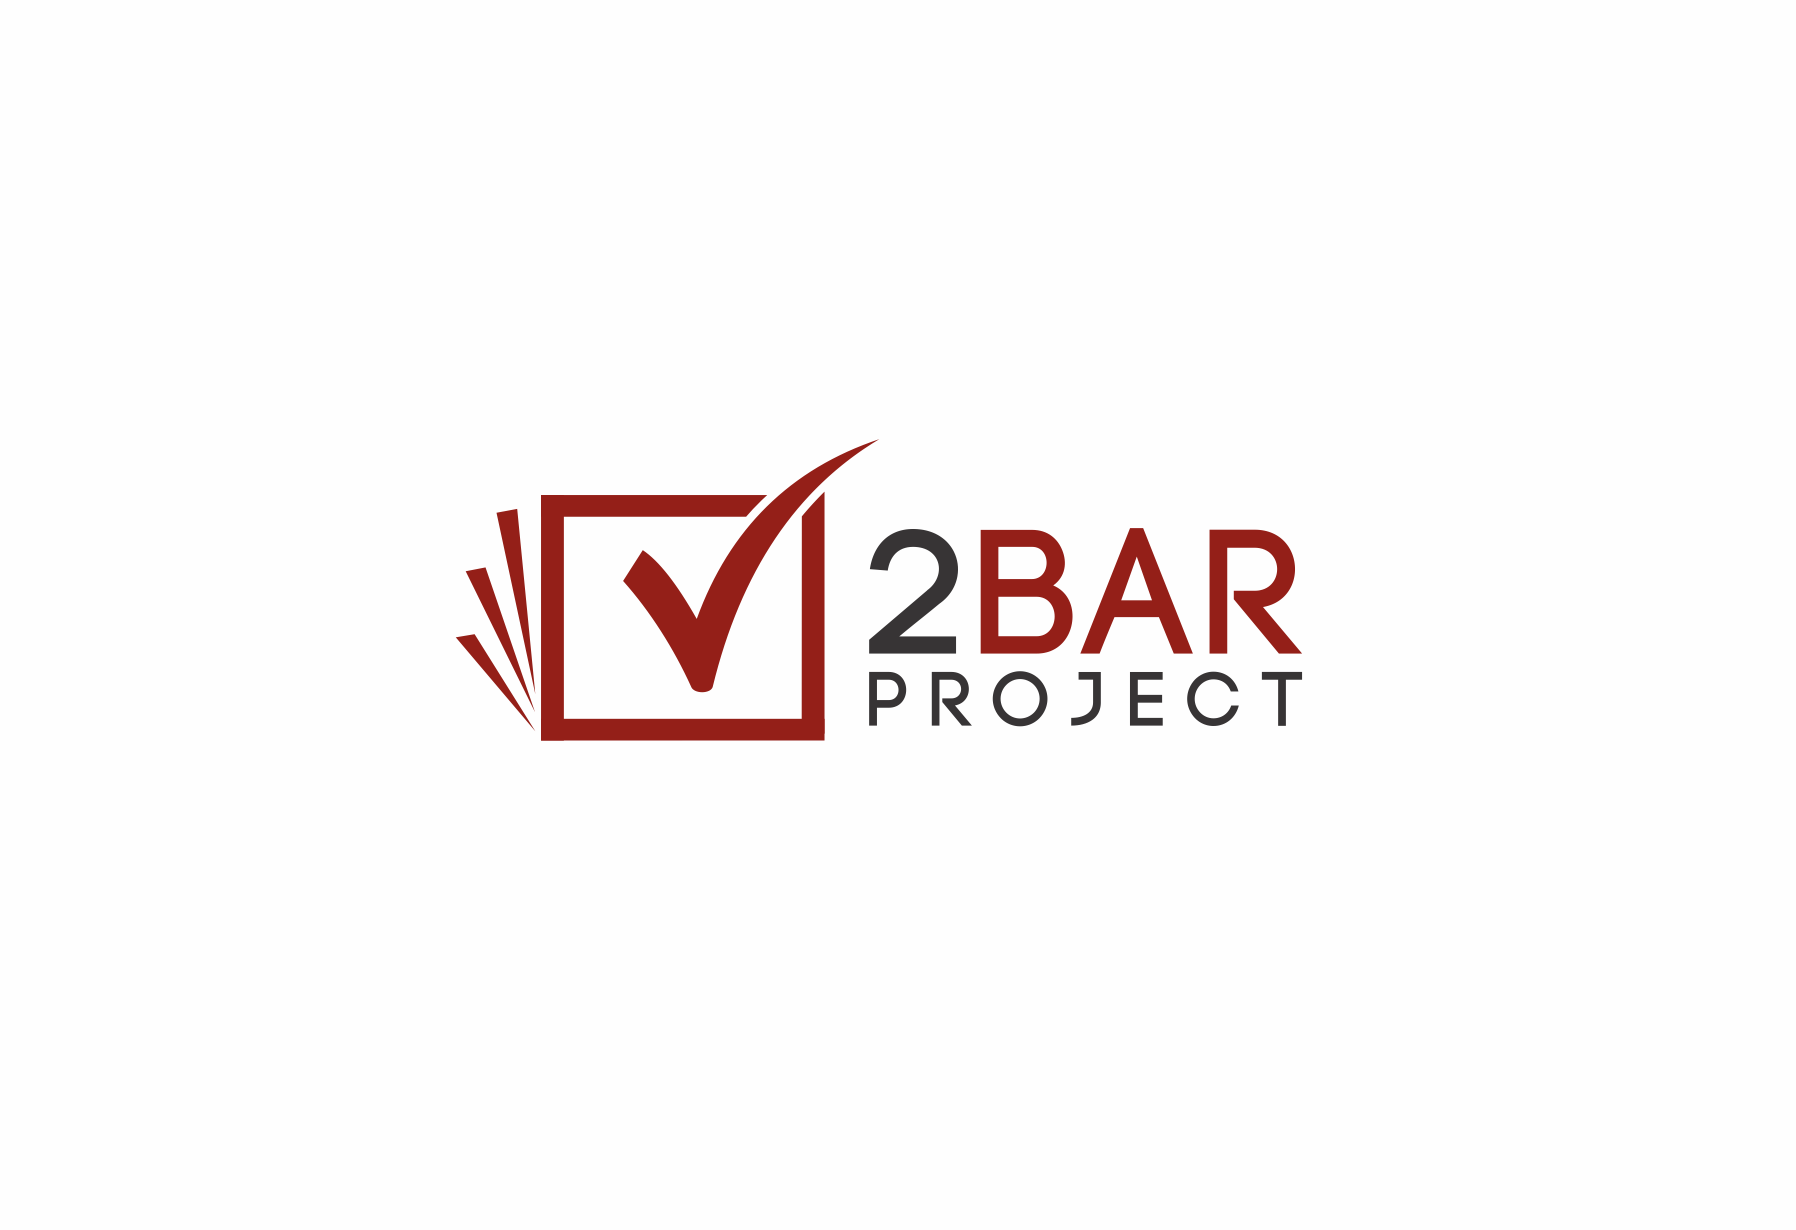 Logo Design by Chakib Alami - Entry No. 14 in the Logo Design Contest 2BAR - Imaginative Logo Design for Discovery Harbour Resources Corp..